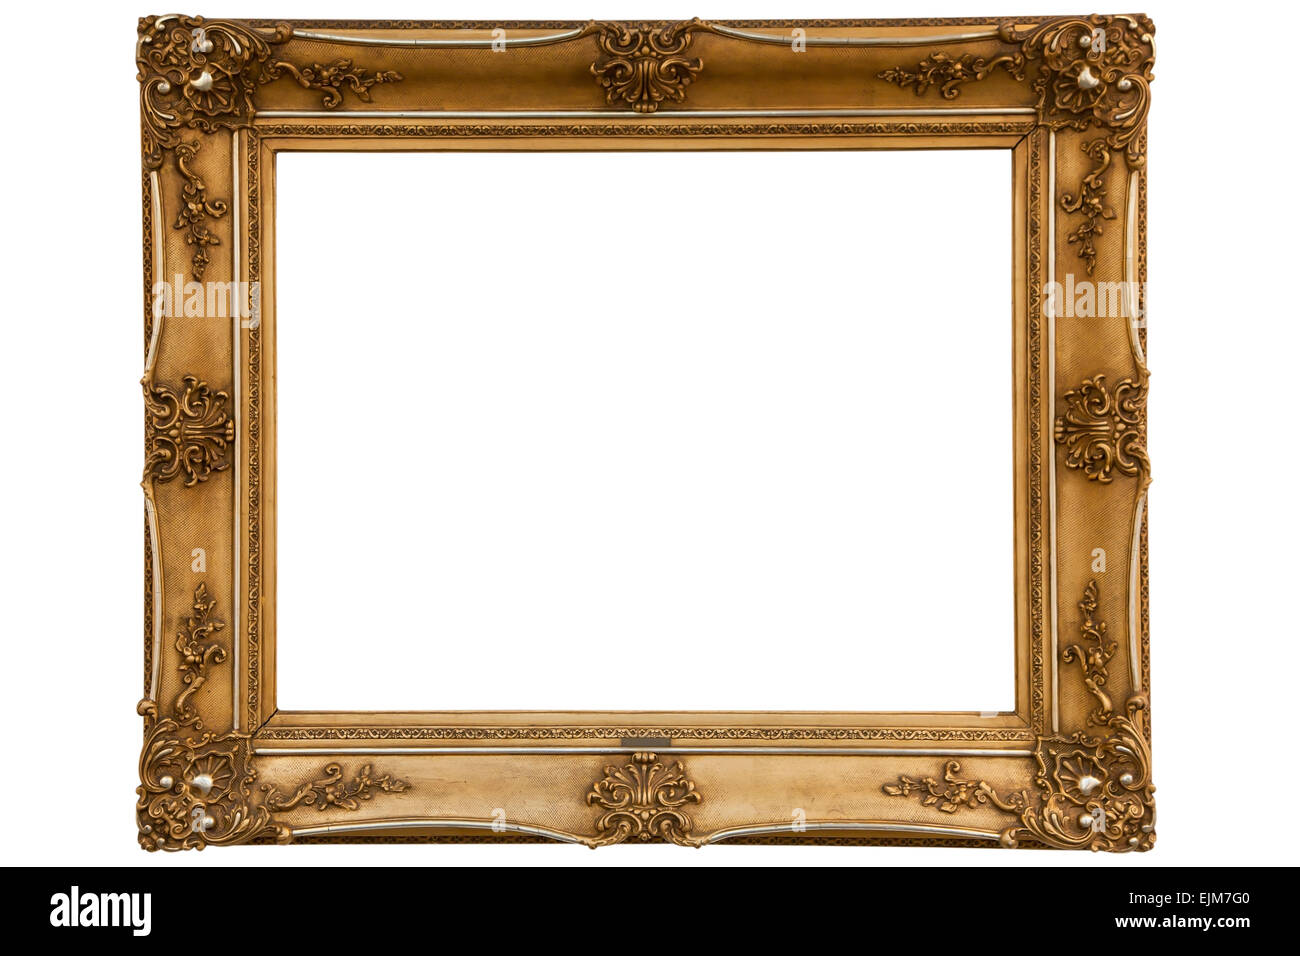 Gilded Picture Frame Stock Photos & Gilded Picture Frame Stock ...